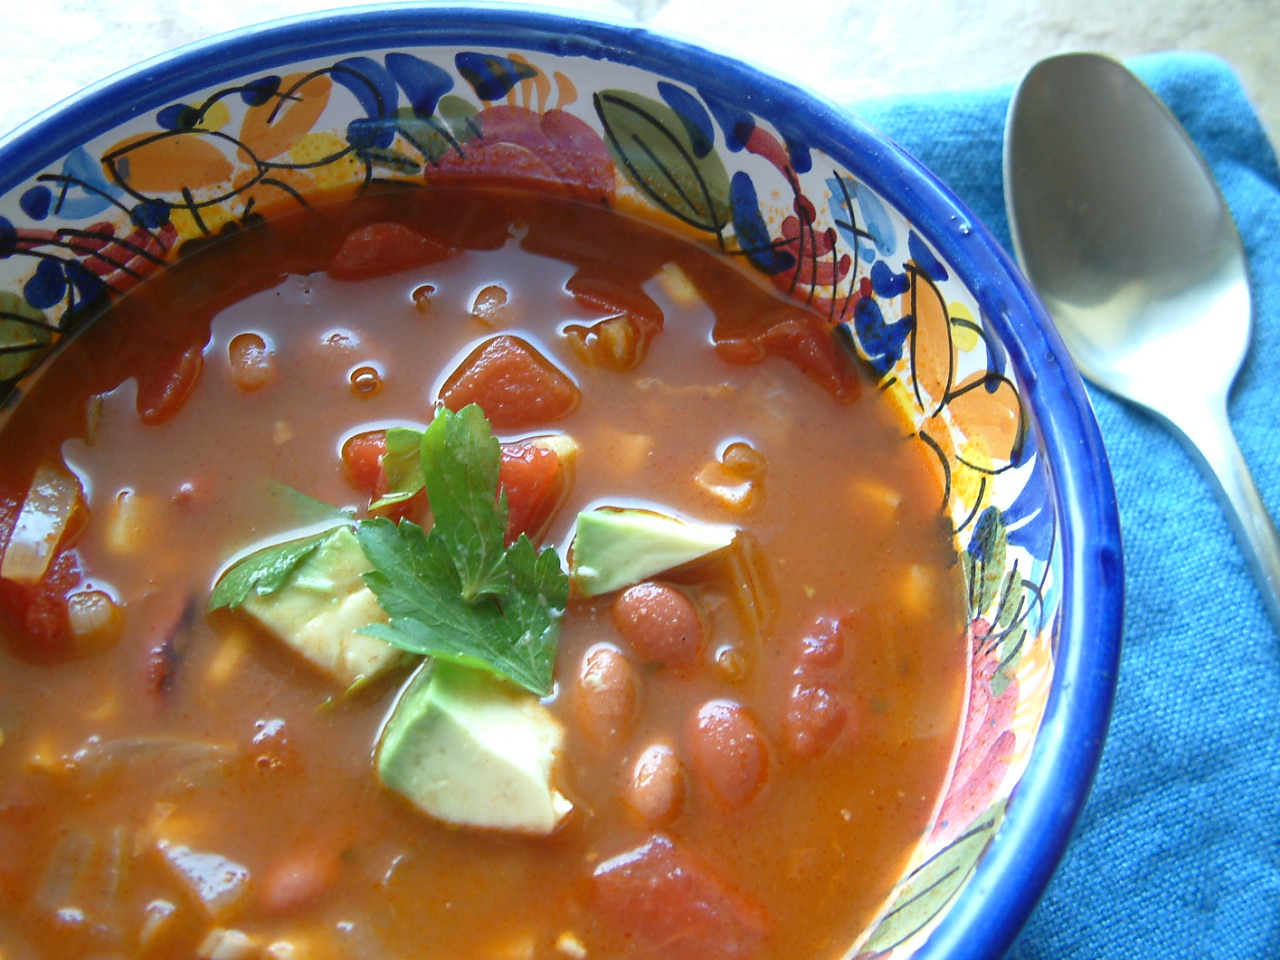 ... accents in savory dishes such as this Mexican corn and bean soup